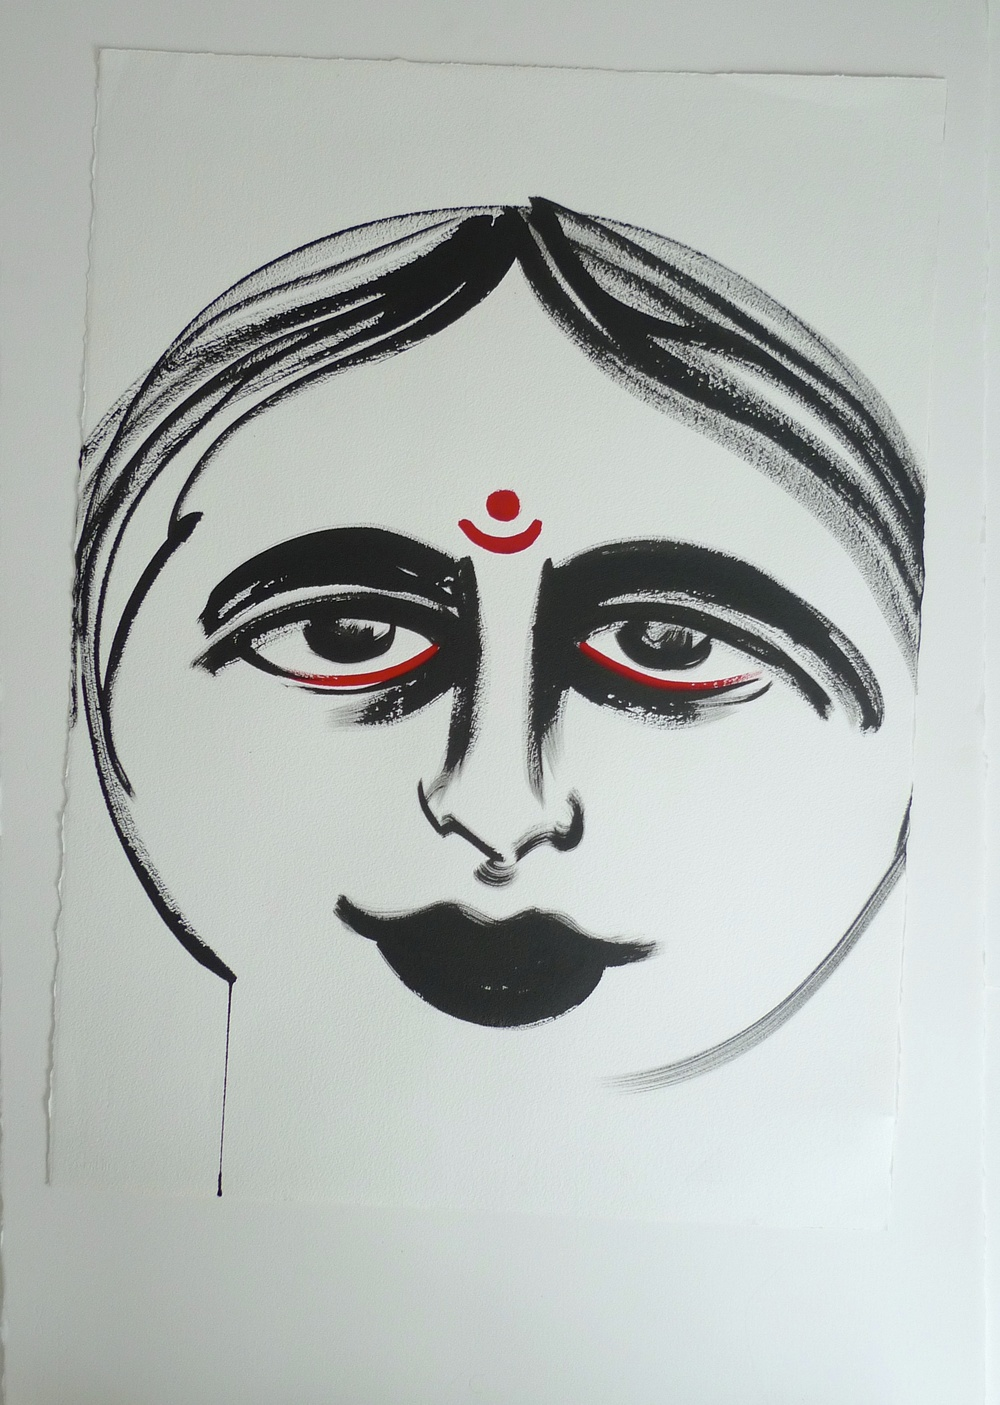 Indian Woman Done for Rome Diety Art Show Black Ink & Red  22 x 30""